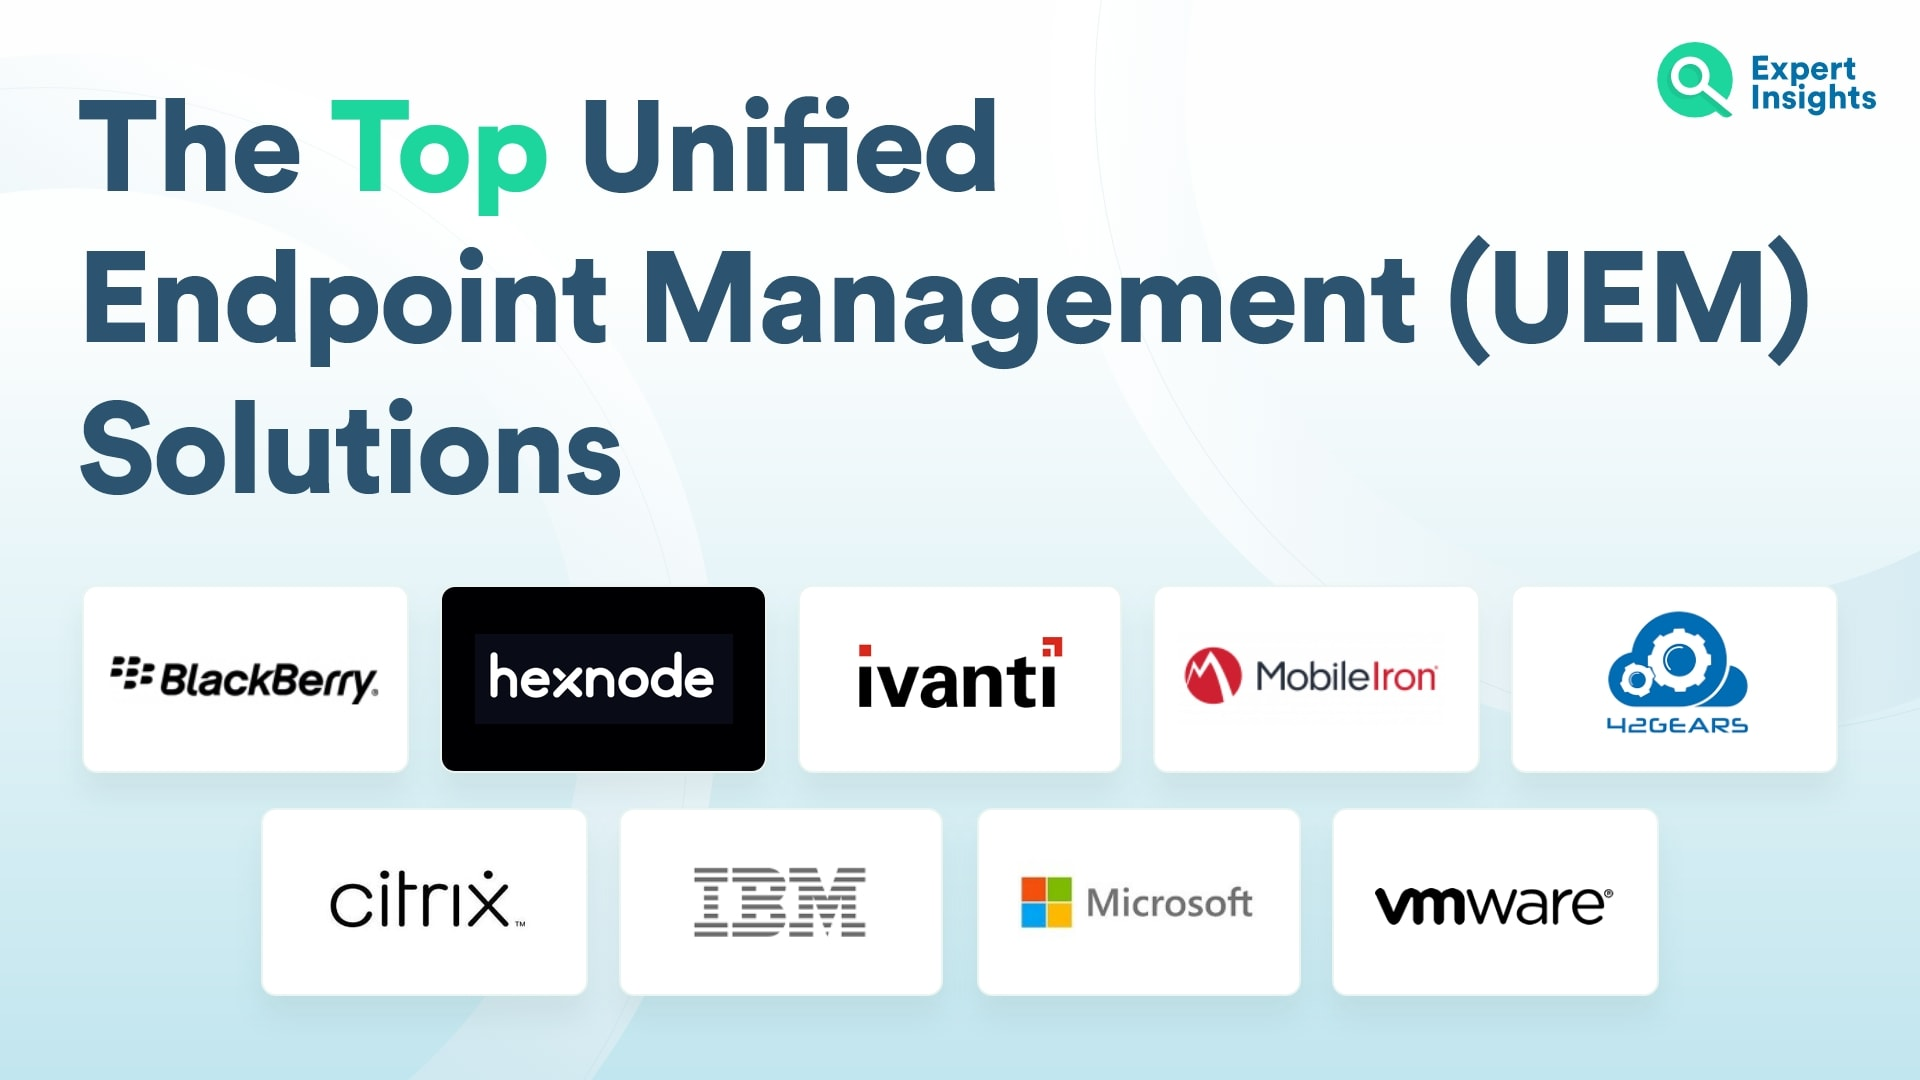 Top Unified Endpoint Management (UEM) Solutions - Expert Insights